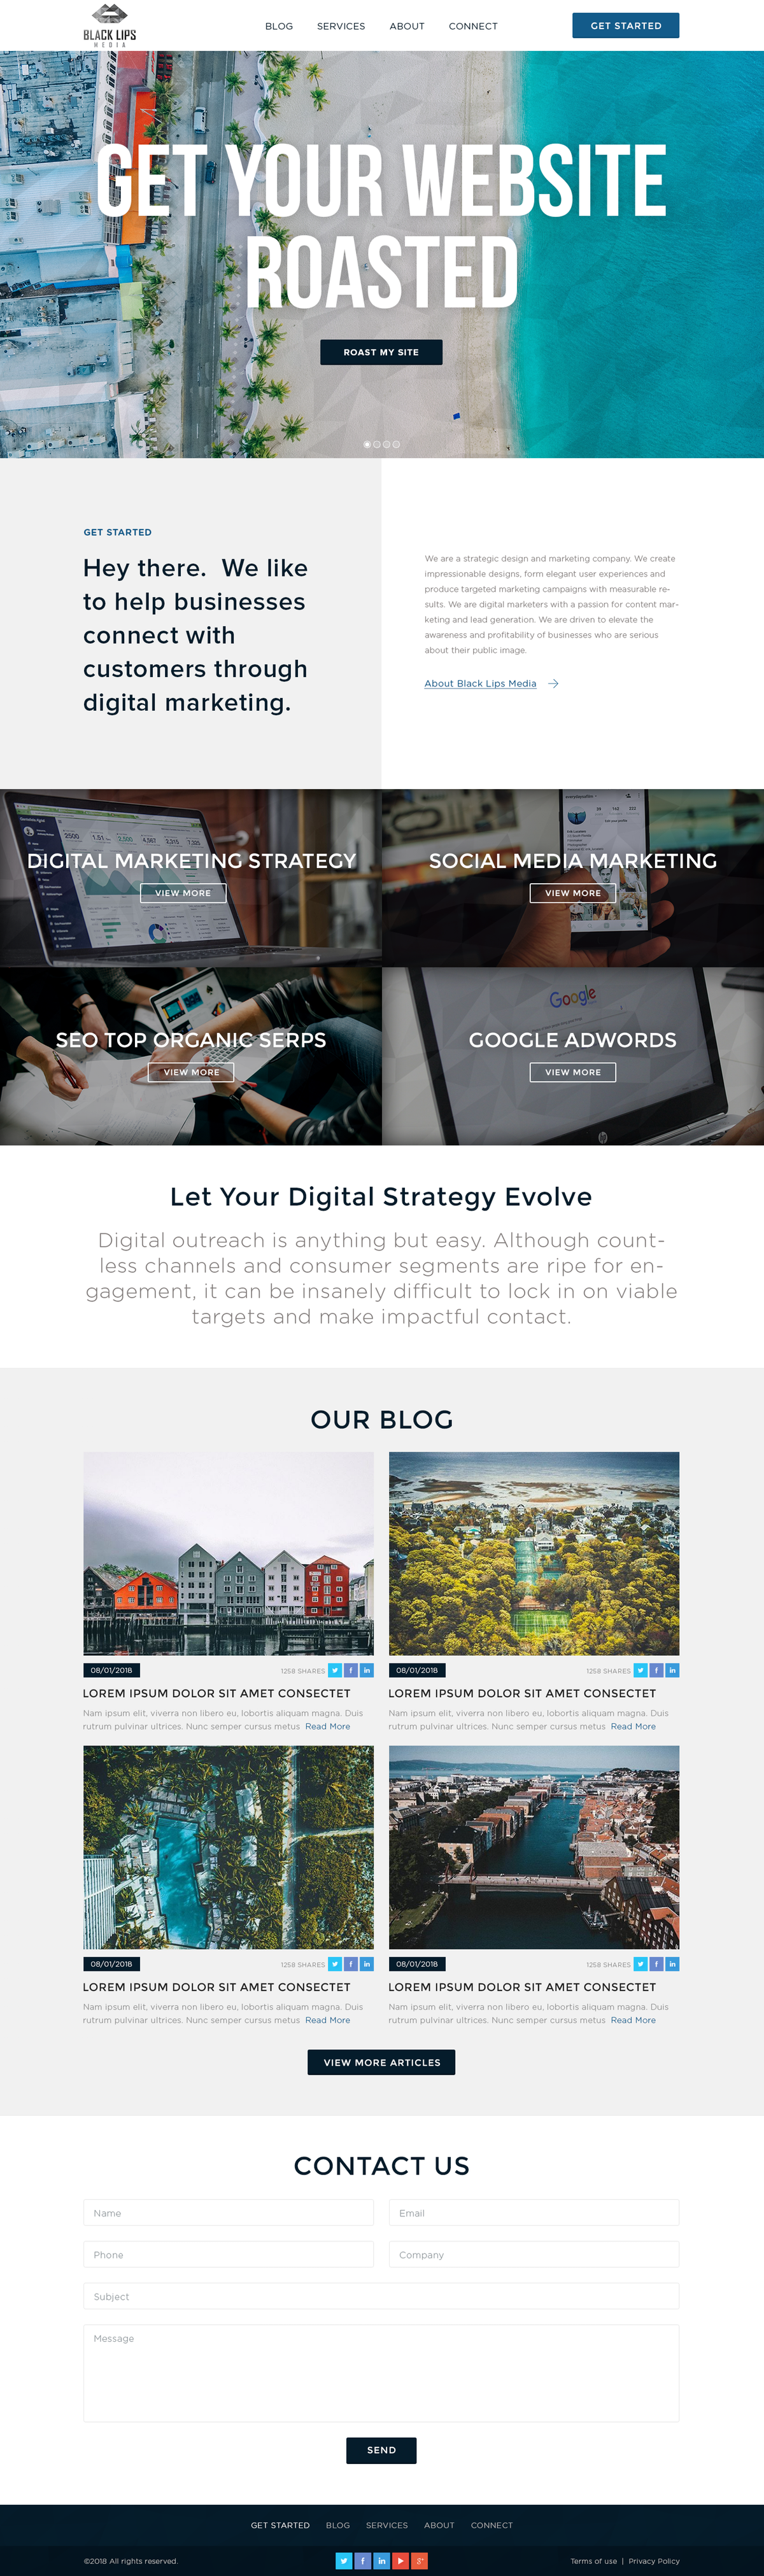 I'm looking to create a stunning website for my digital marketing agency